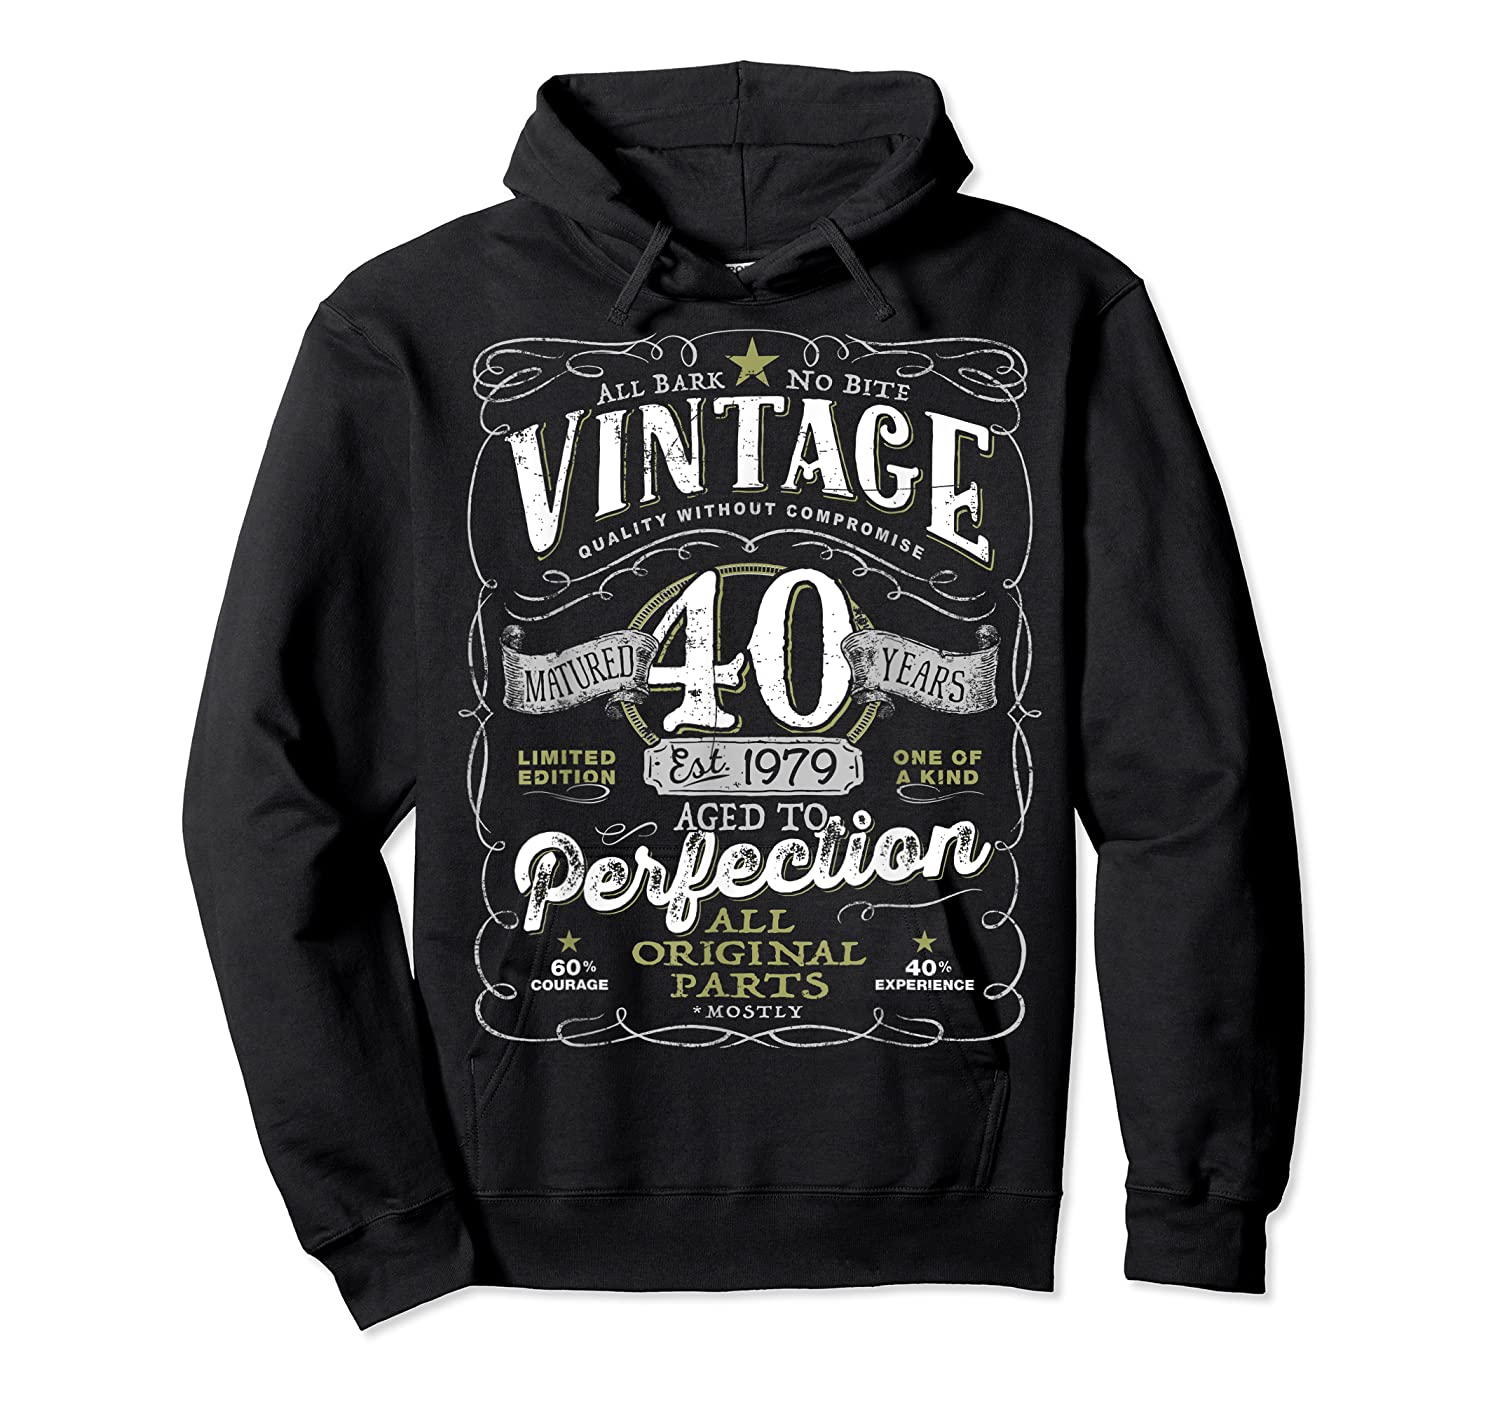 Vintage 40th Birthday Shirt, 1979, Aged To Perfection Unisex Pullover Hoodie